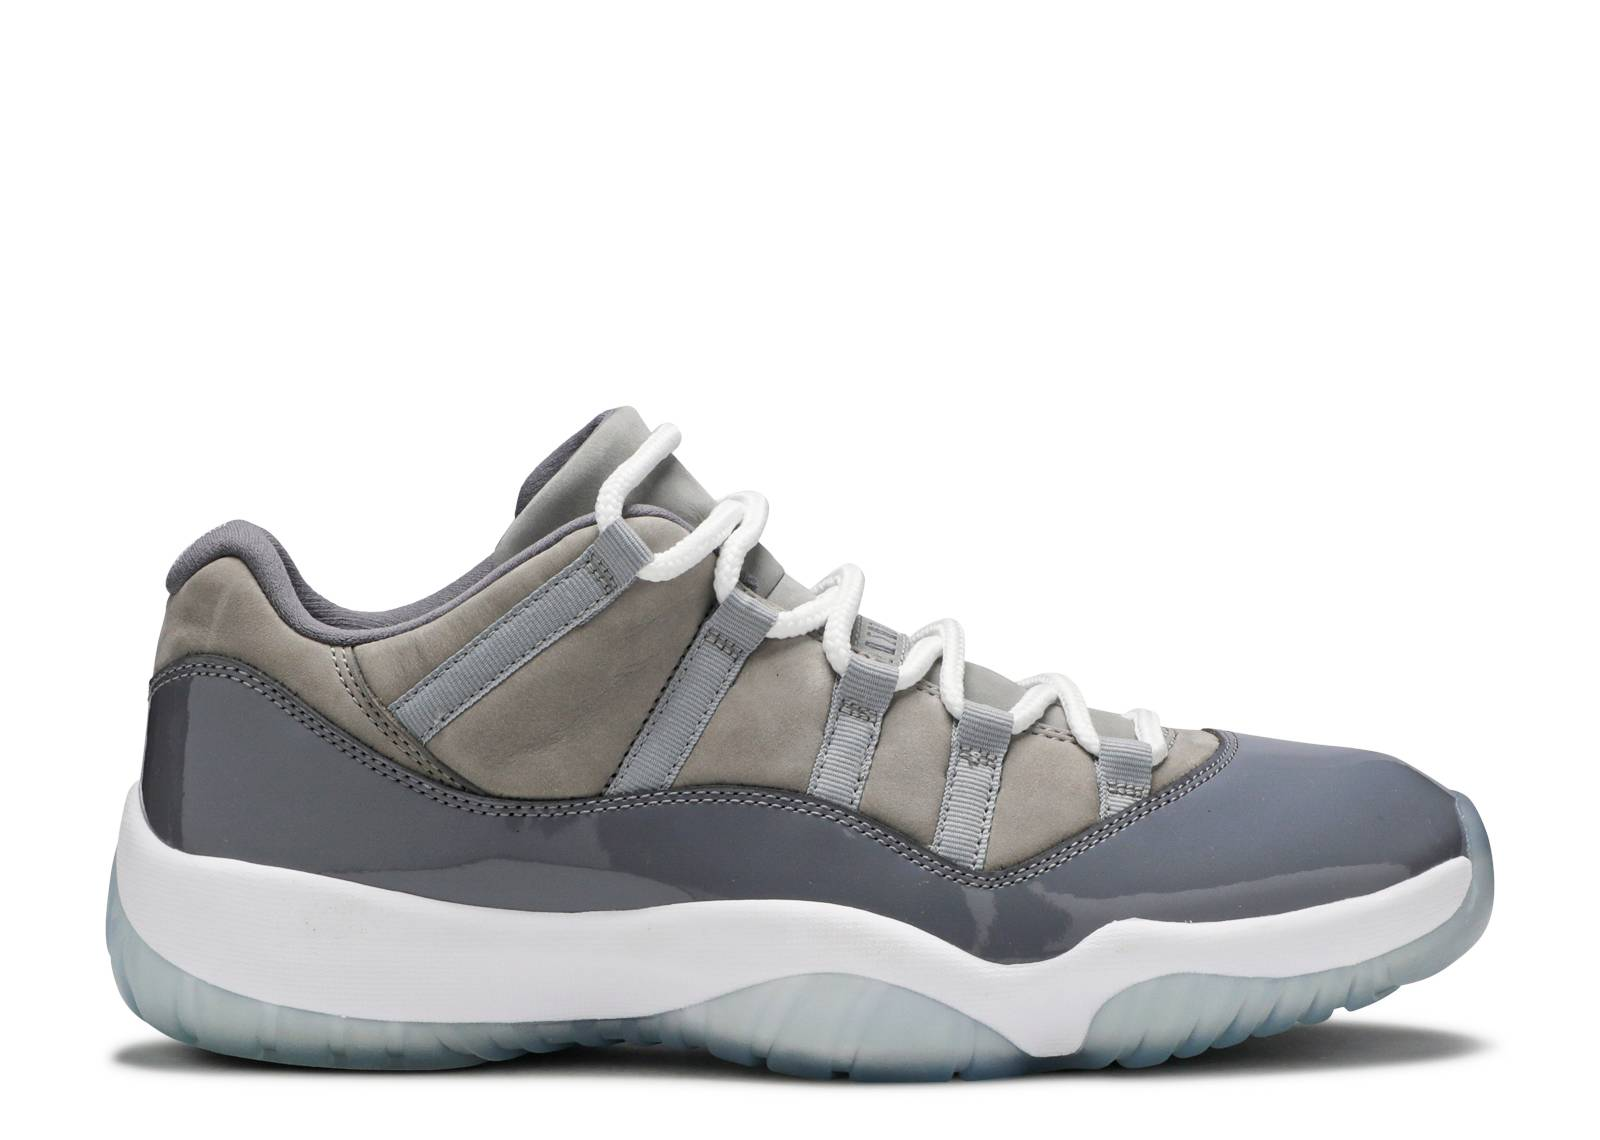 c2e4d3f16265d Air Jordan 11 Retro Low